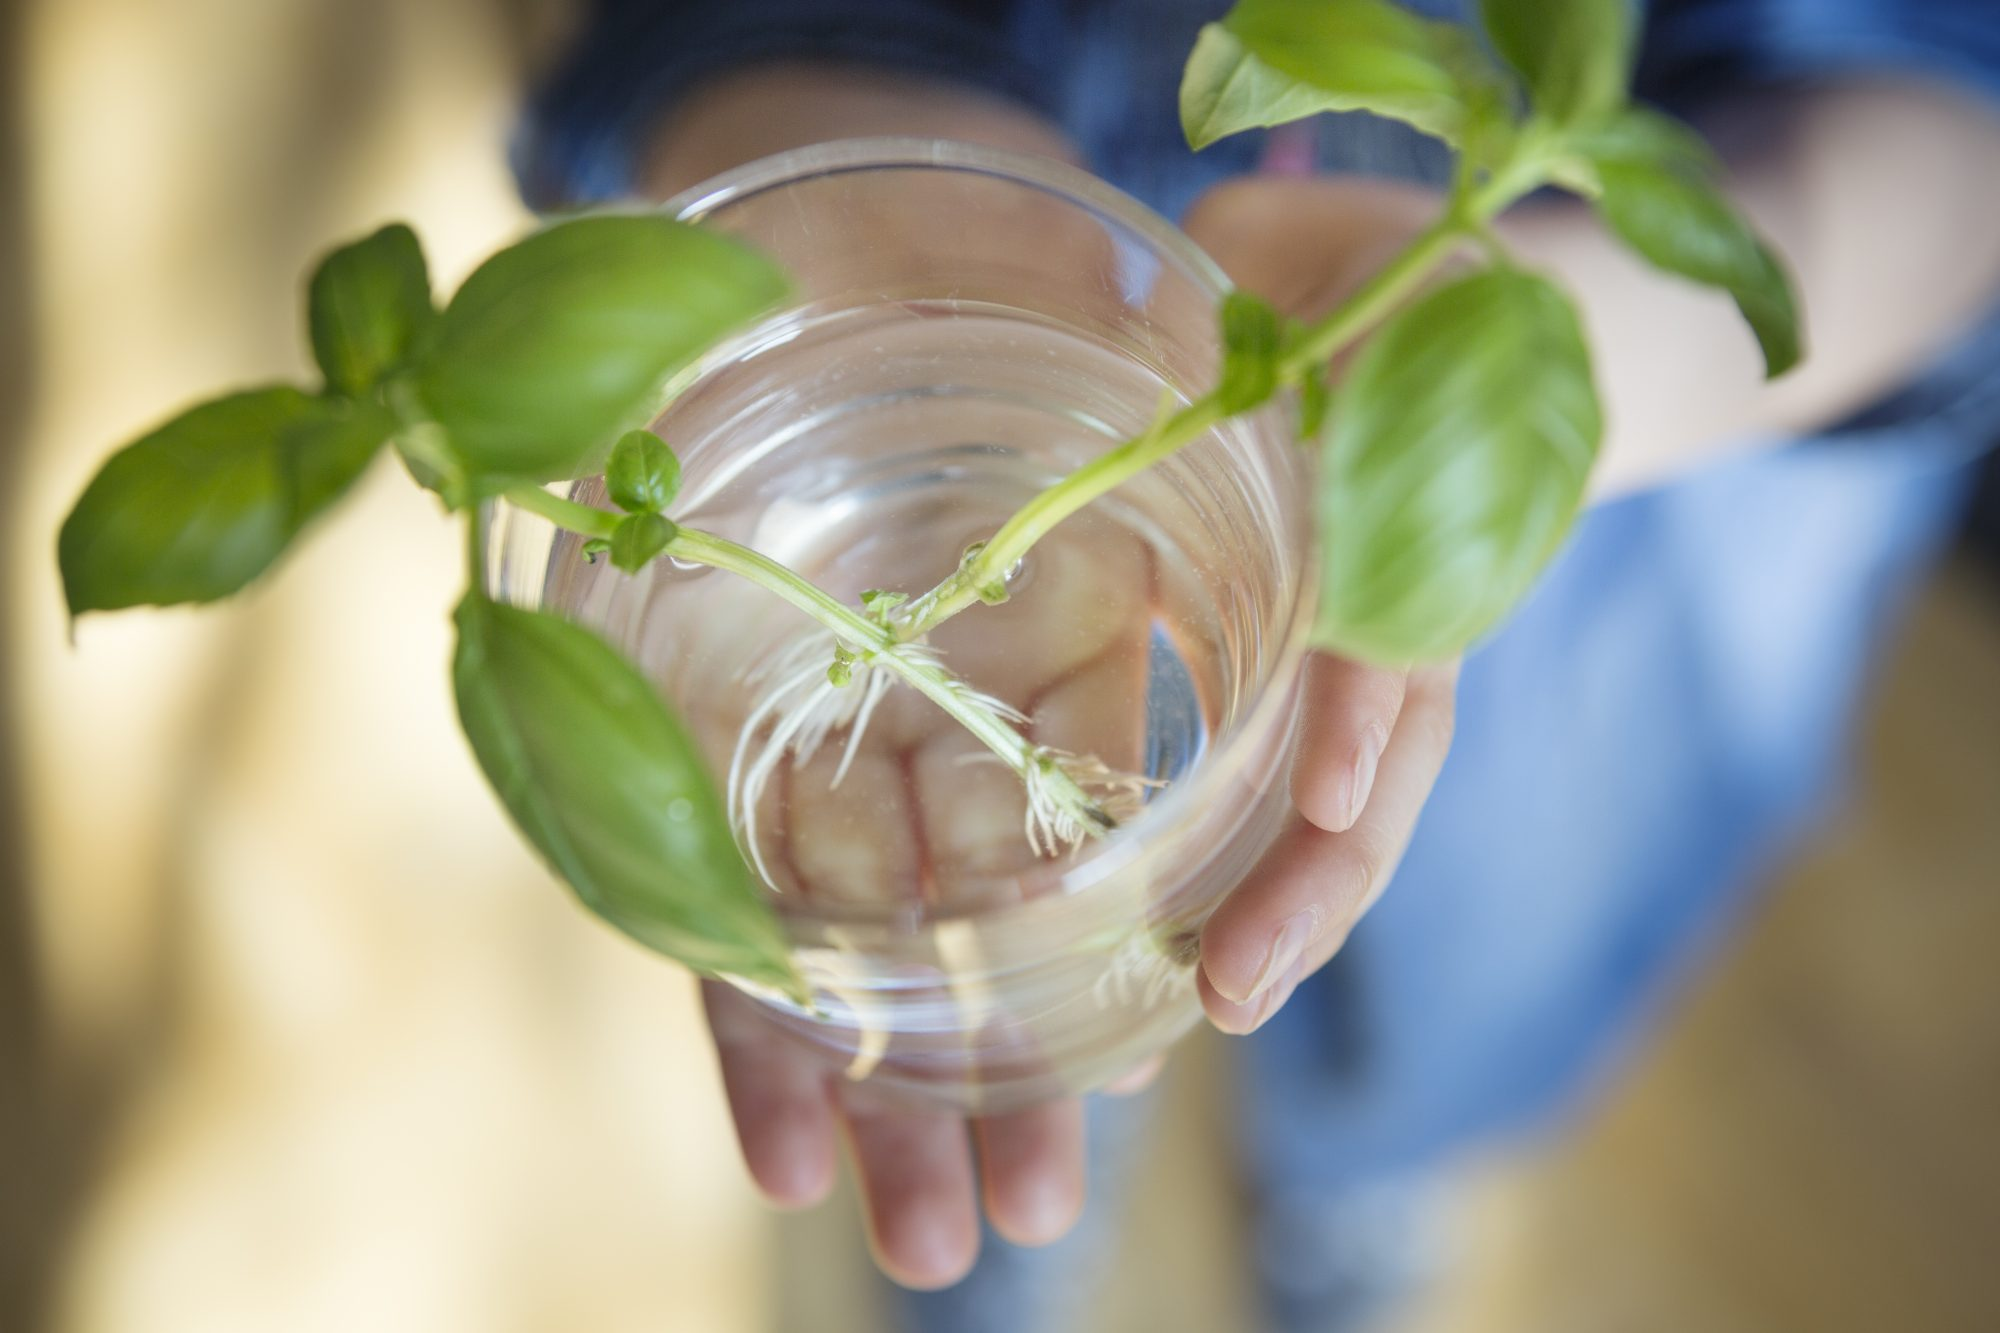 Basil plant being regrown from trimmed shoots in a water drinking glass held in a child's hands